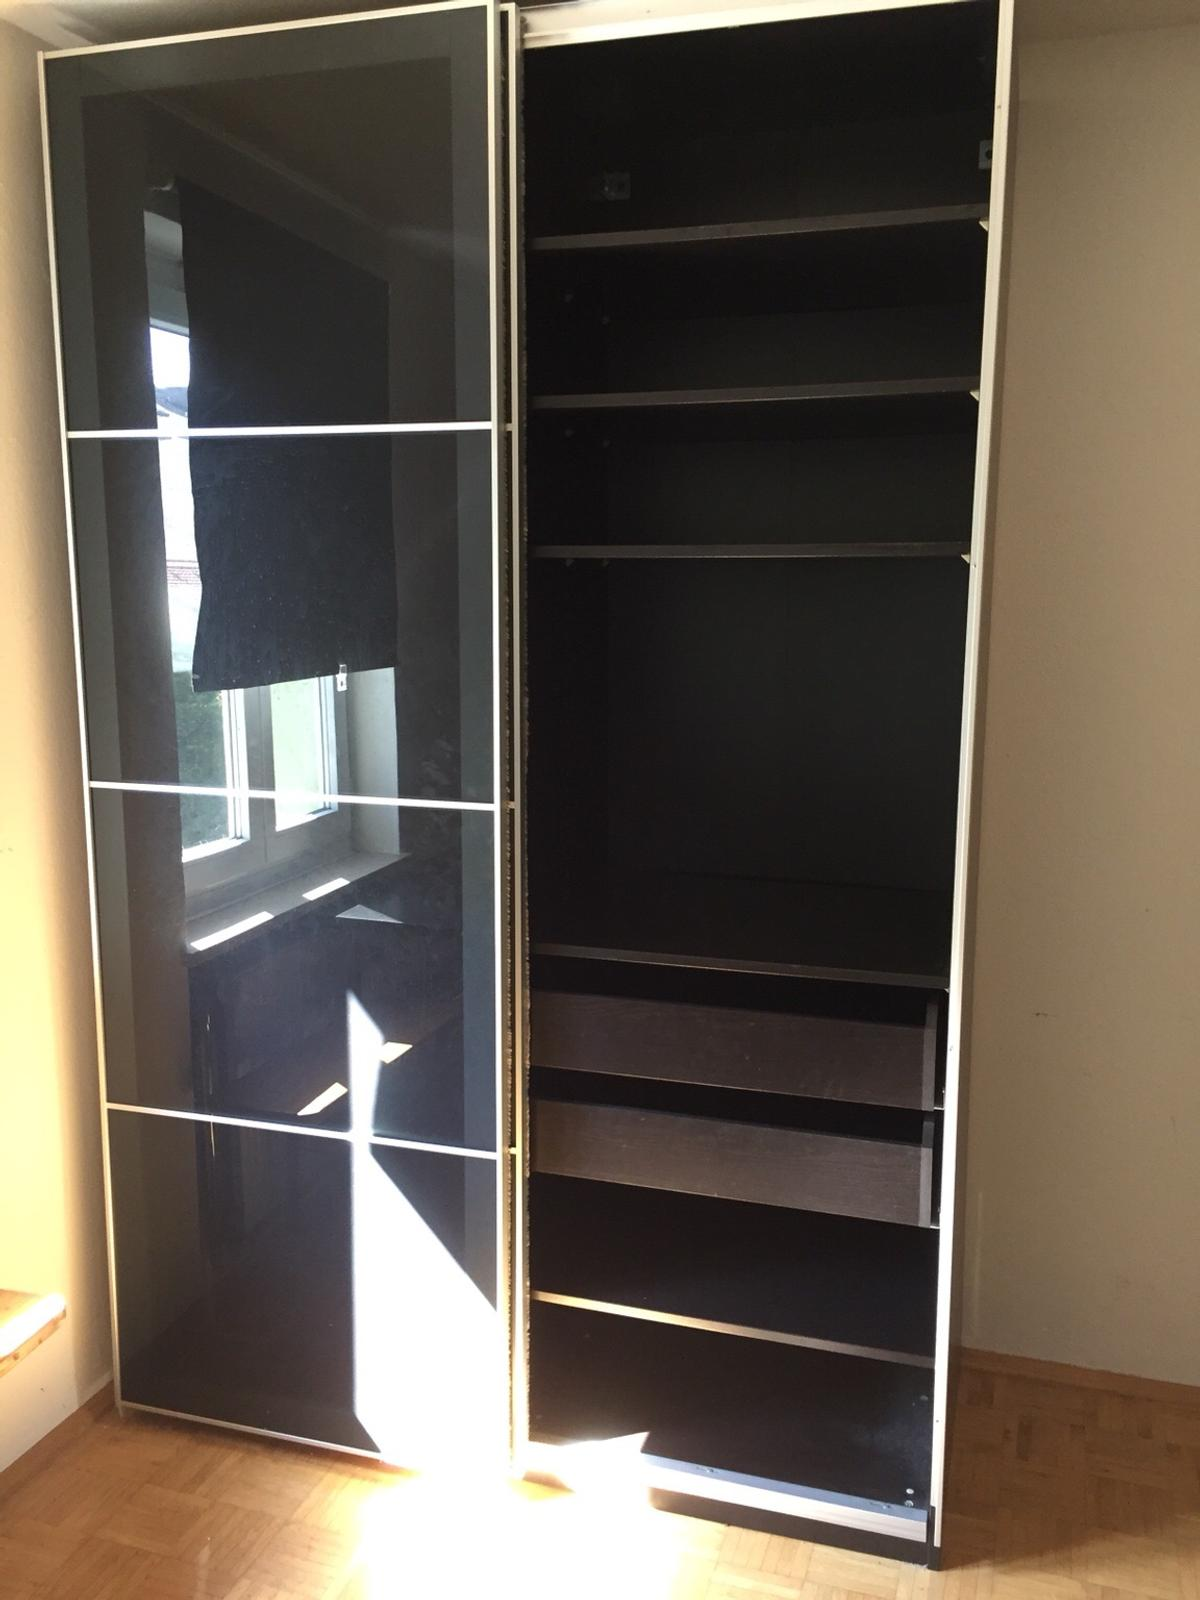 Ikea Pax Schwebeturenschrank In 80807 Munchen For 200 00 For Sale